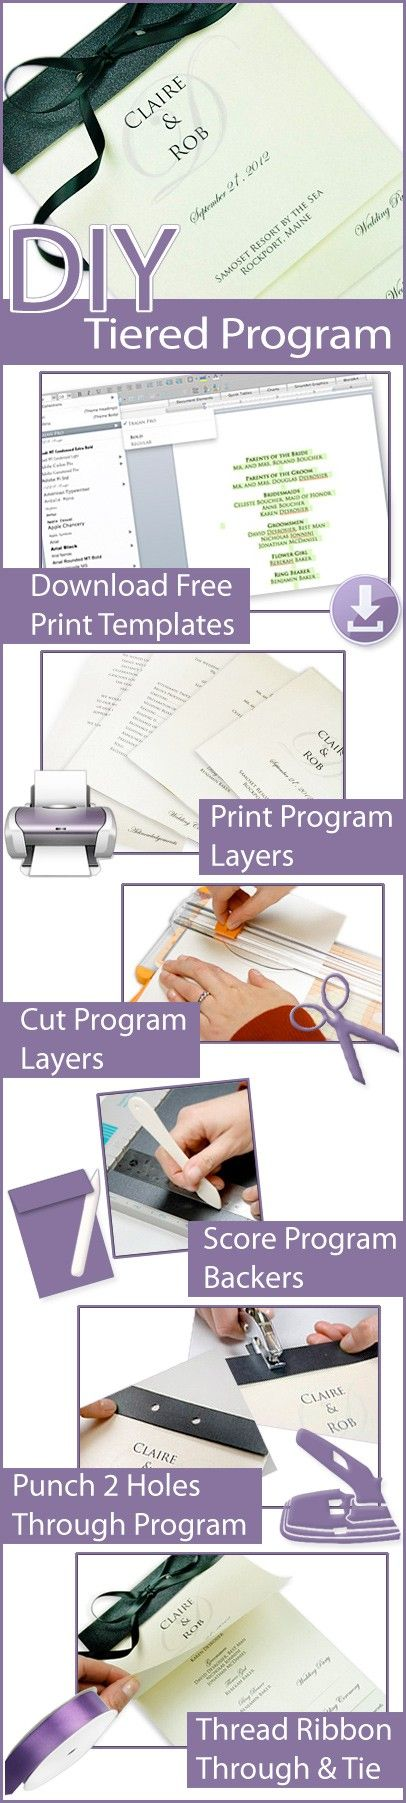 steps to make your own tiered wedding program free print